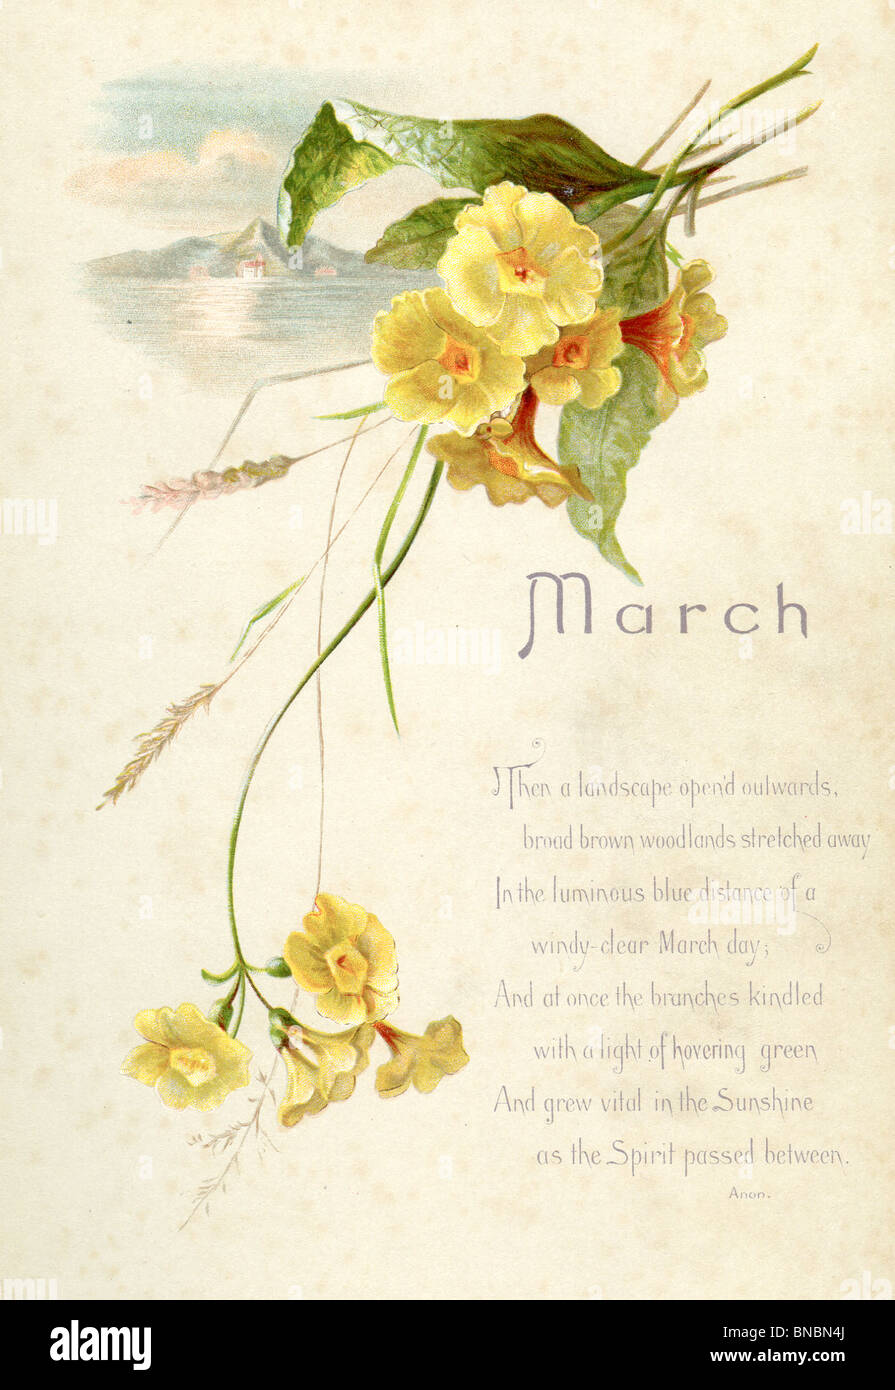 March Poem with Polyanthus - Stock Image